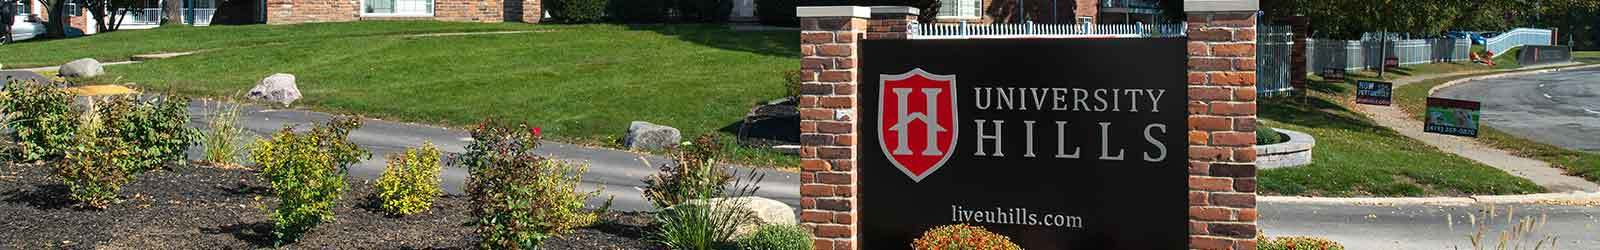 Schedule a tour at University Hills